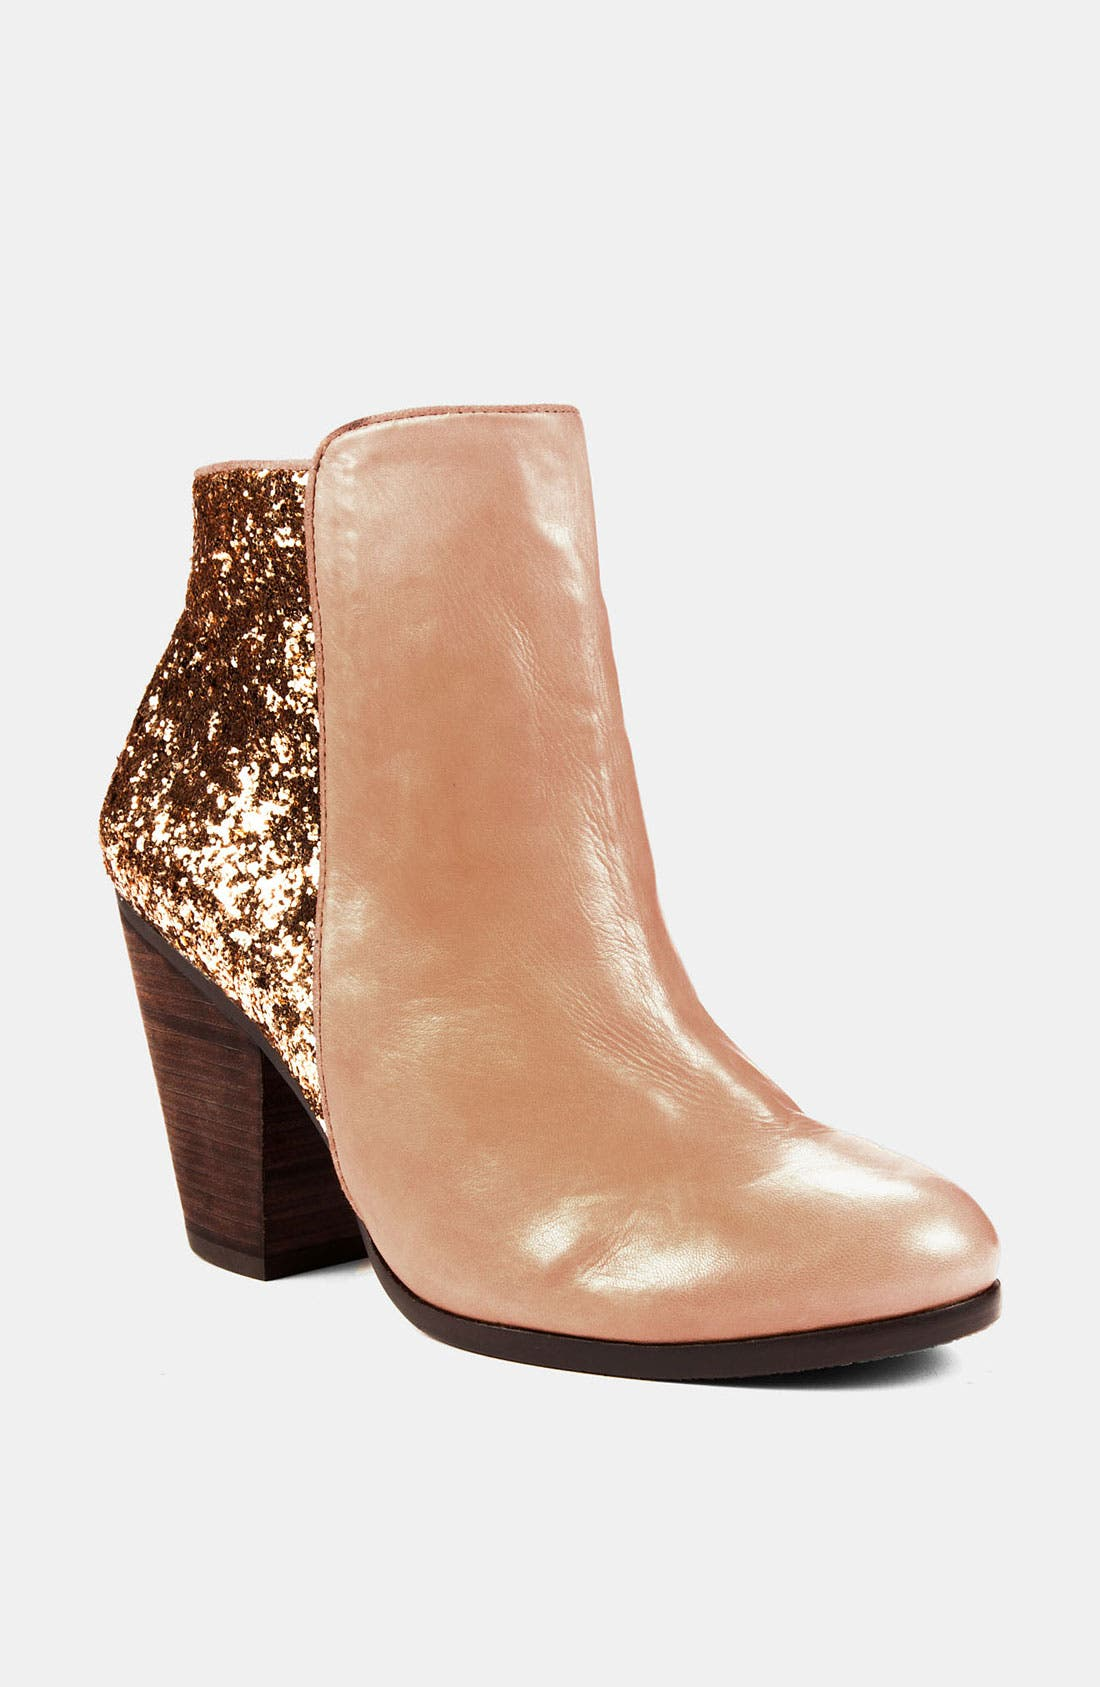 Alternate Image 1 Selected - Vince Camuto 'Hariza' Boot